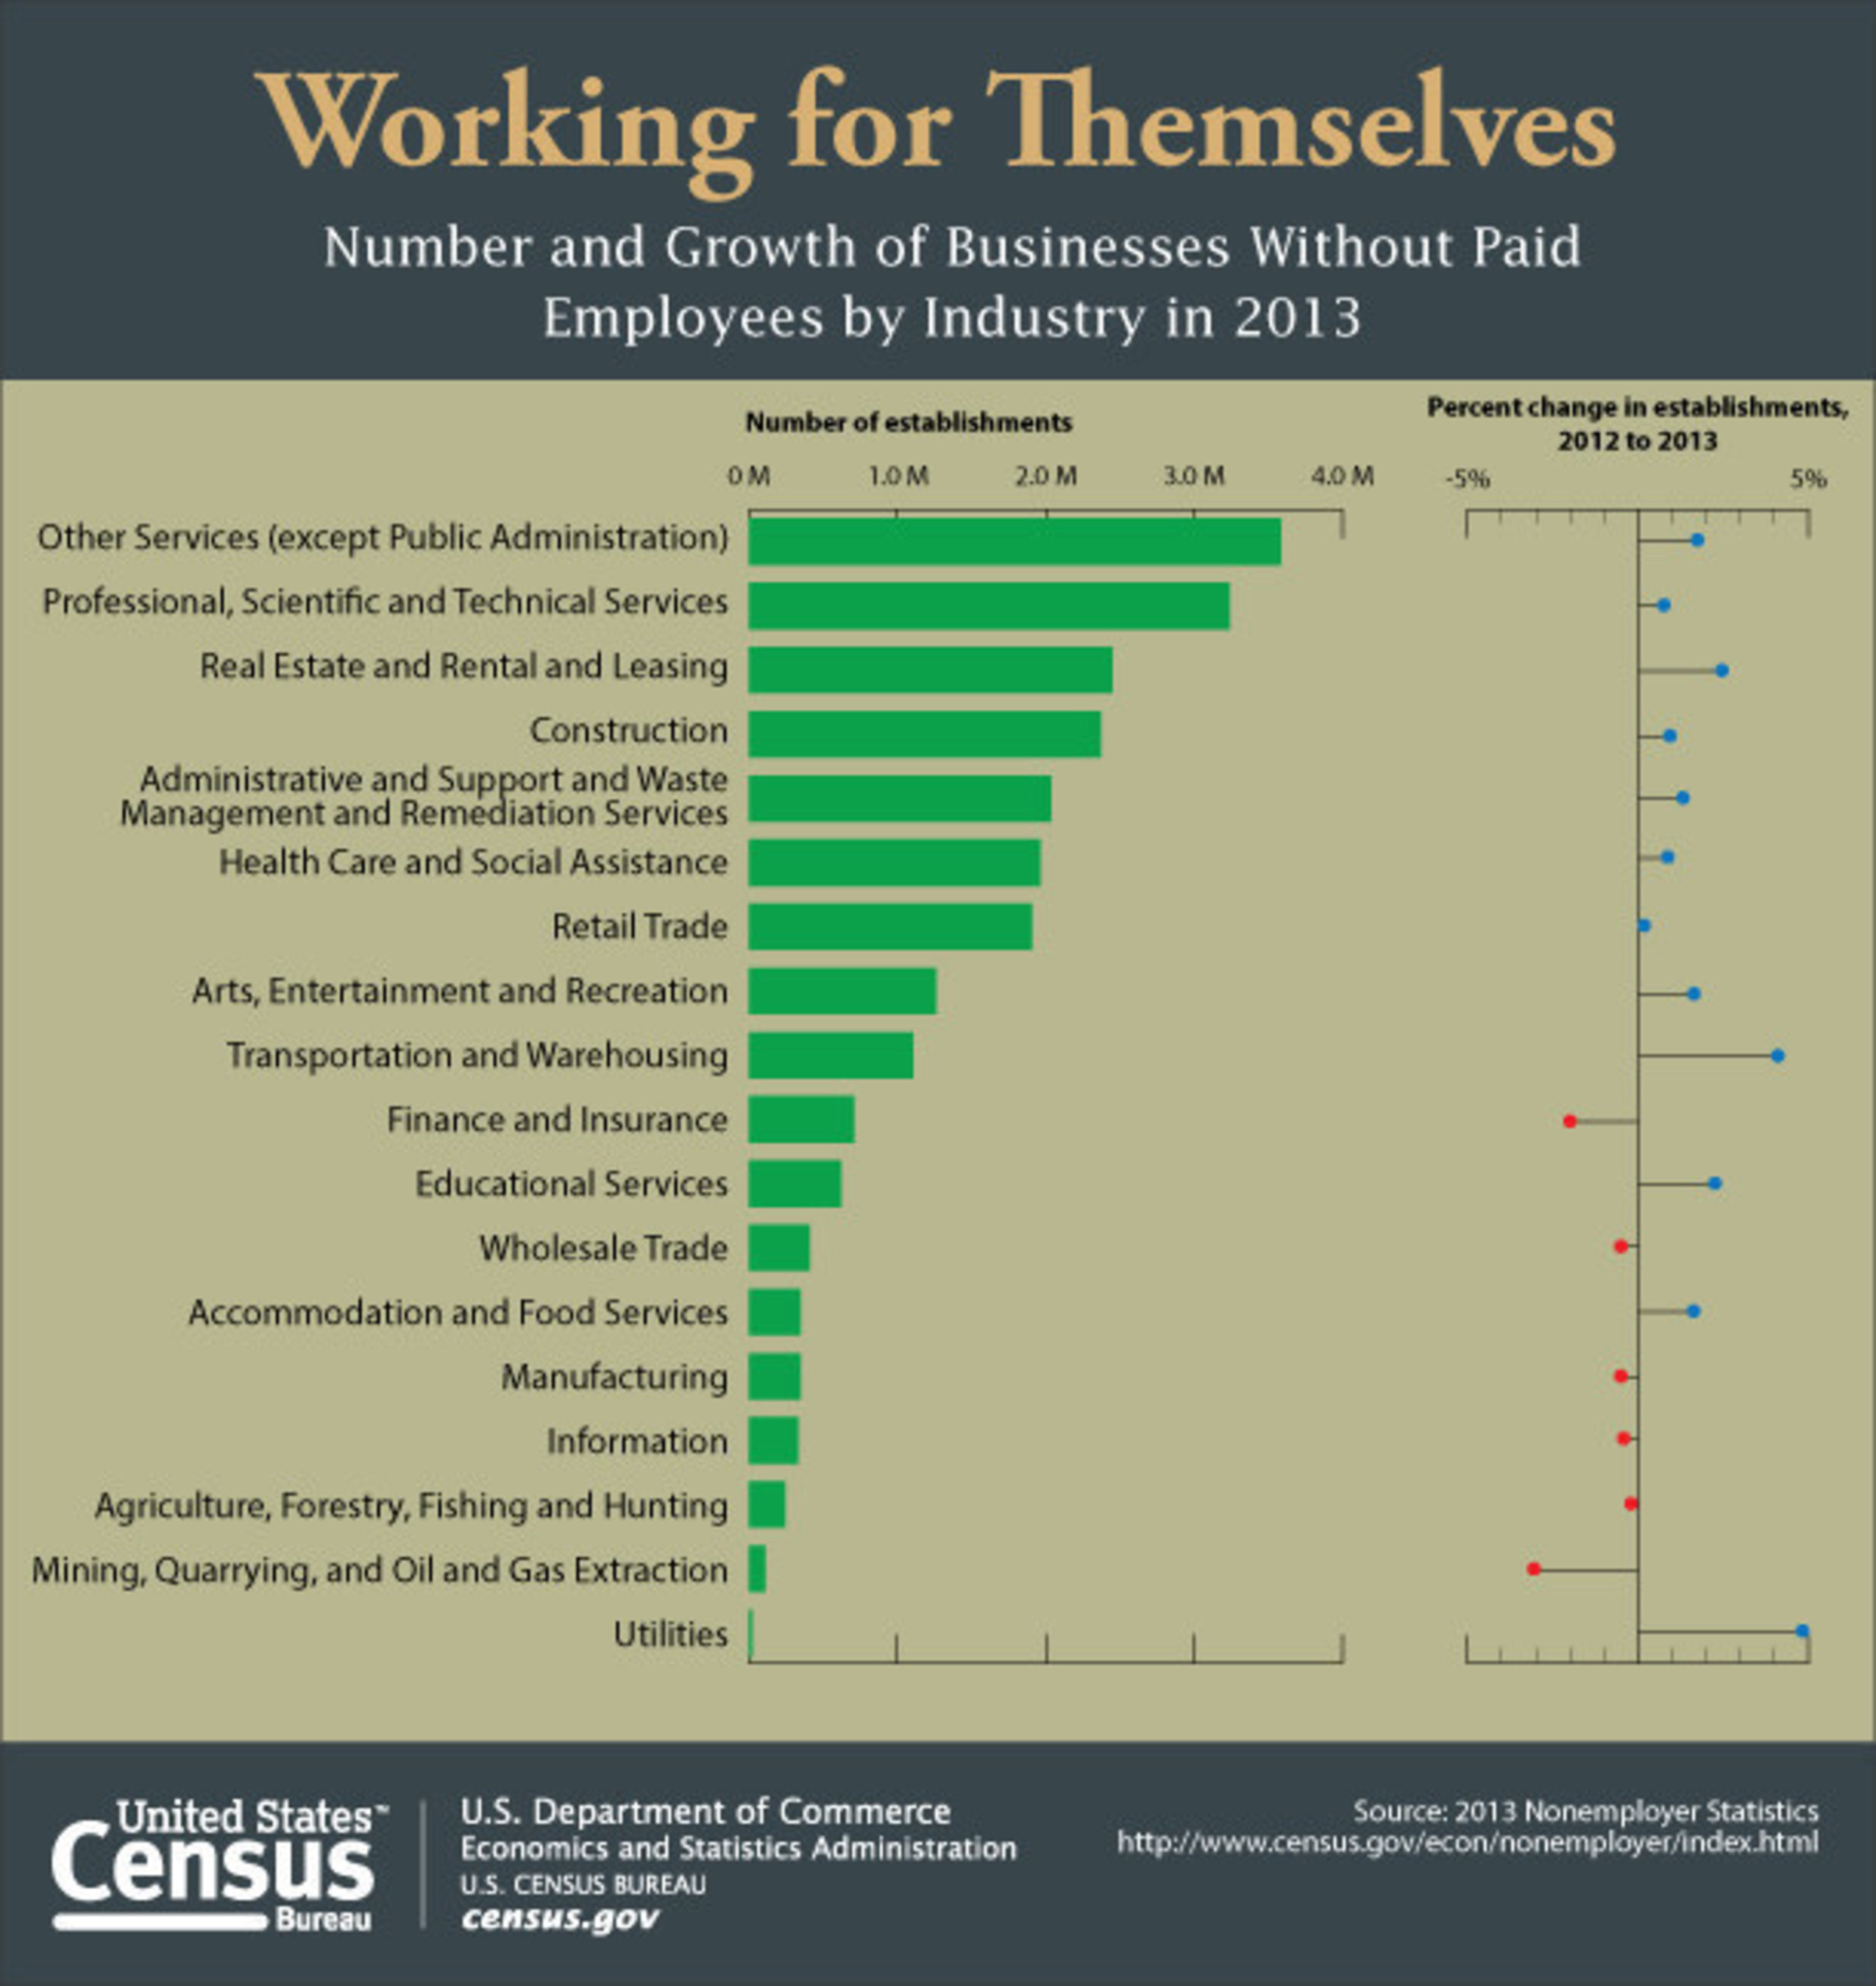 There were 23 million businesses without paid employees, or nonemployer businesses, in the U.S. in 2013. Other services led all sectors of the economy in the total number of such businesses, with 3.6 million, followed by professional, scientific and technical services. Most sectors experienced growth in the number of nonemployer establishments since 2012.